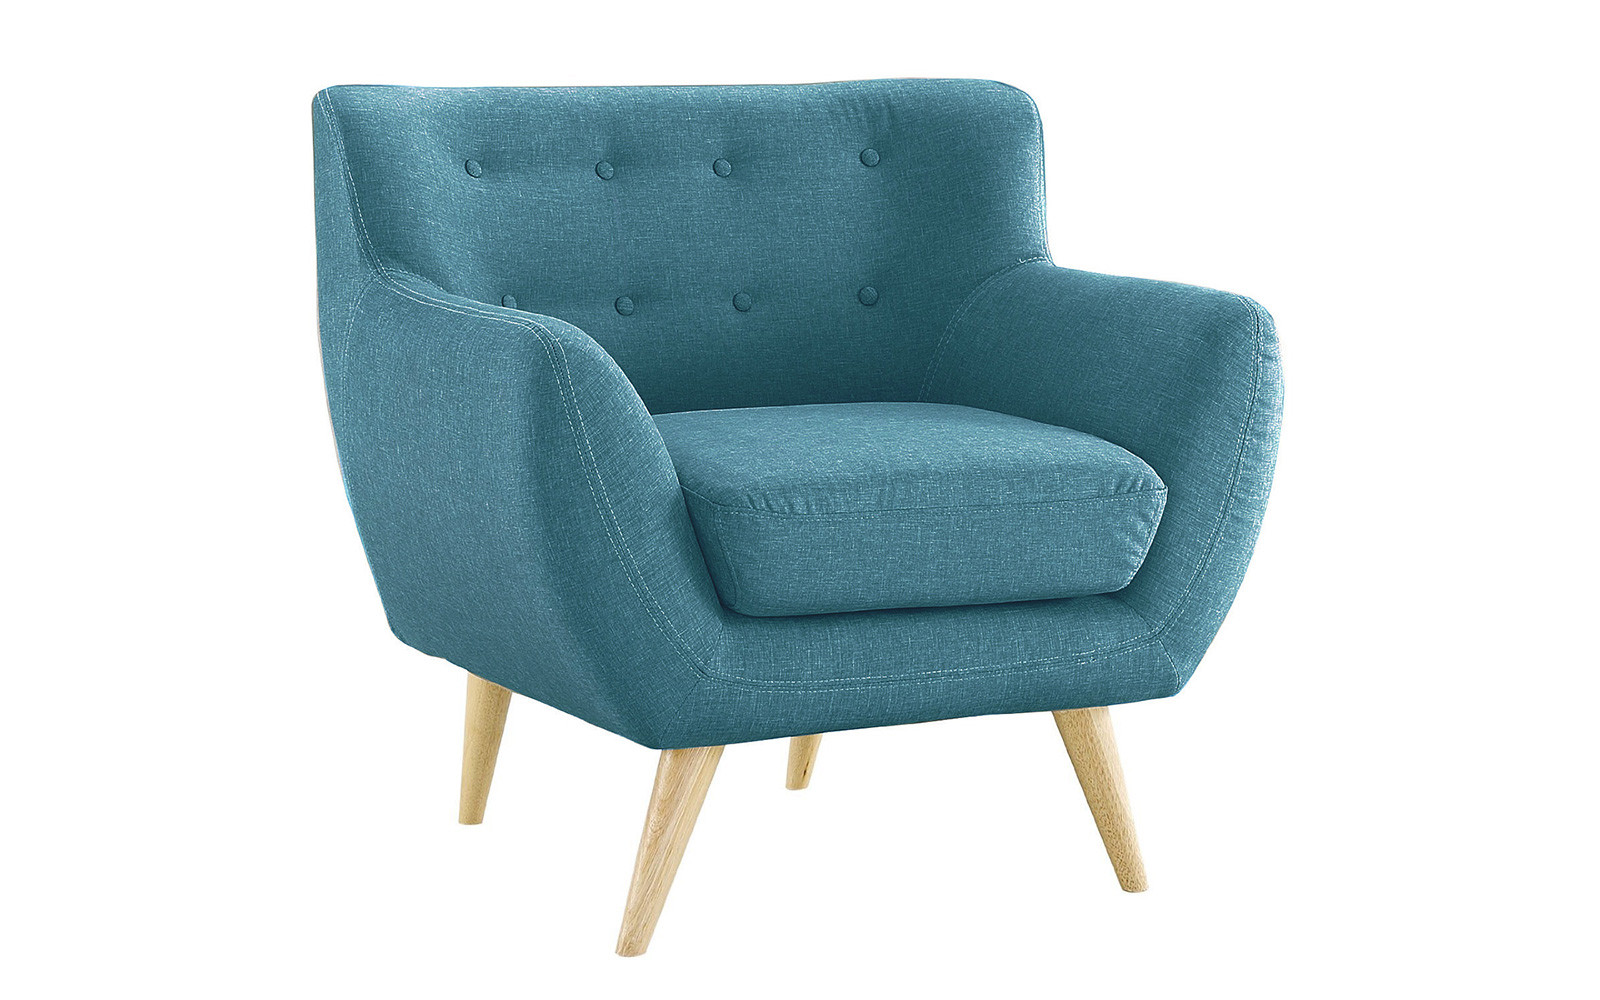 Superb Mid Century Modern Tufted Linen Fabric Accent Chair